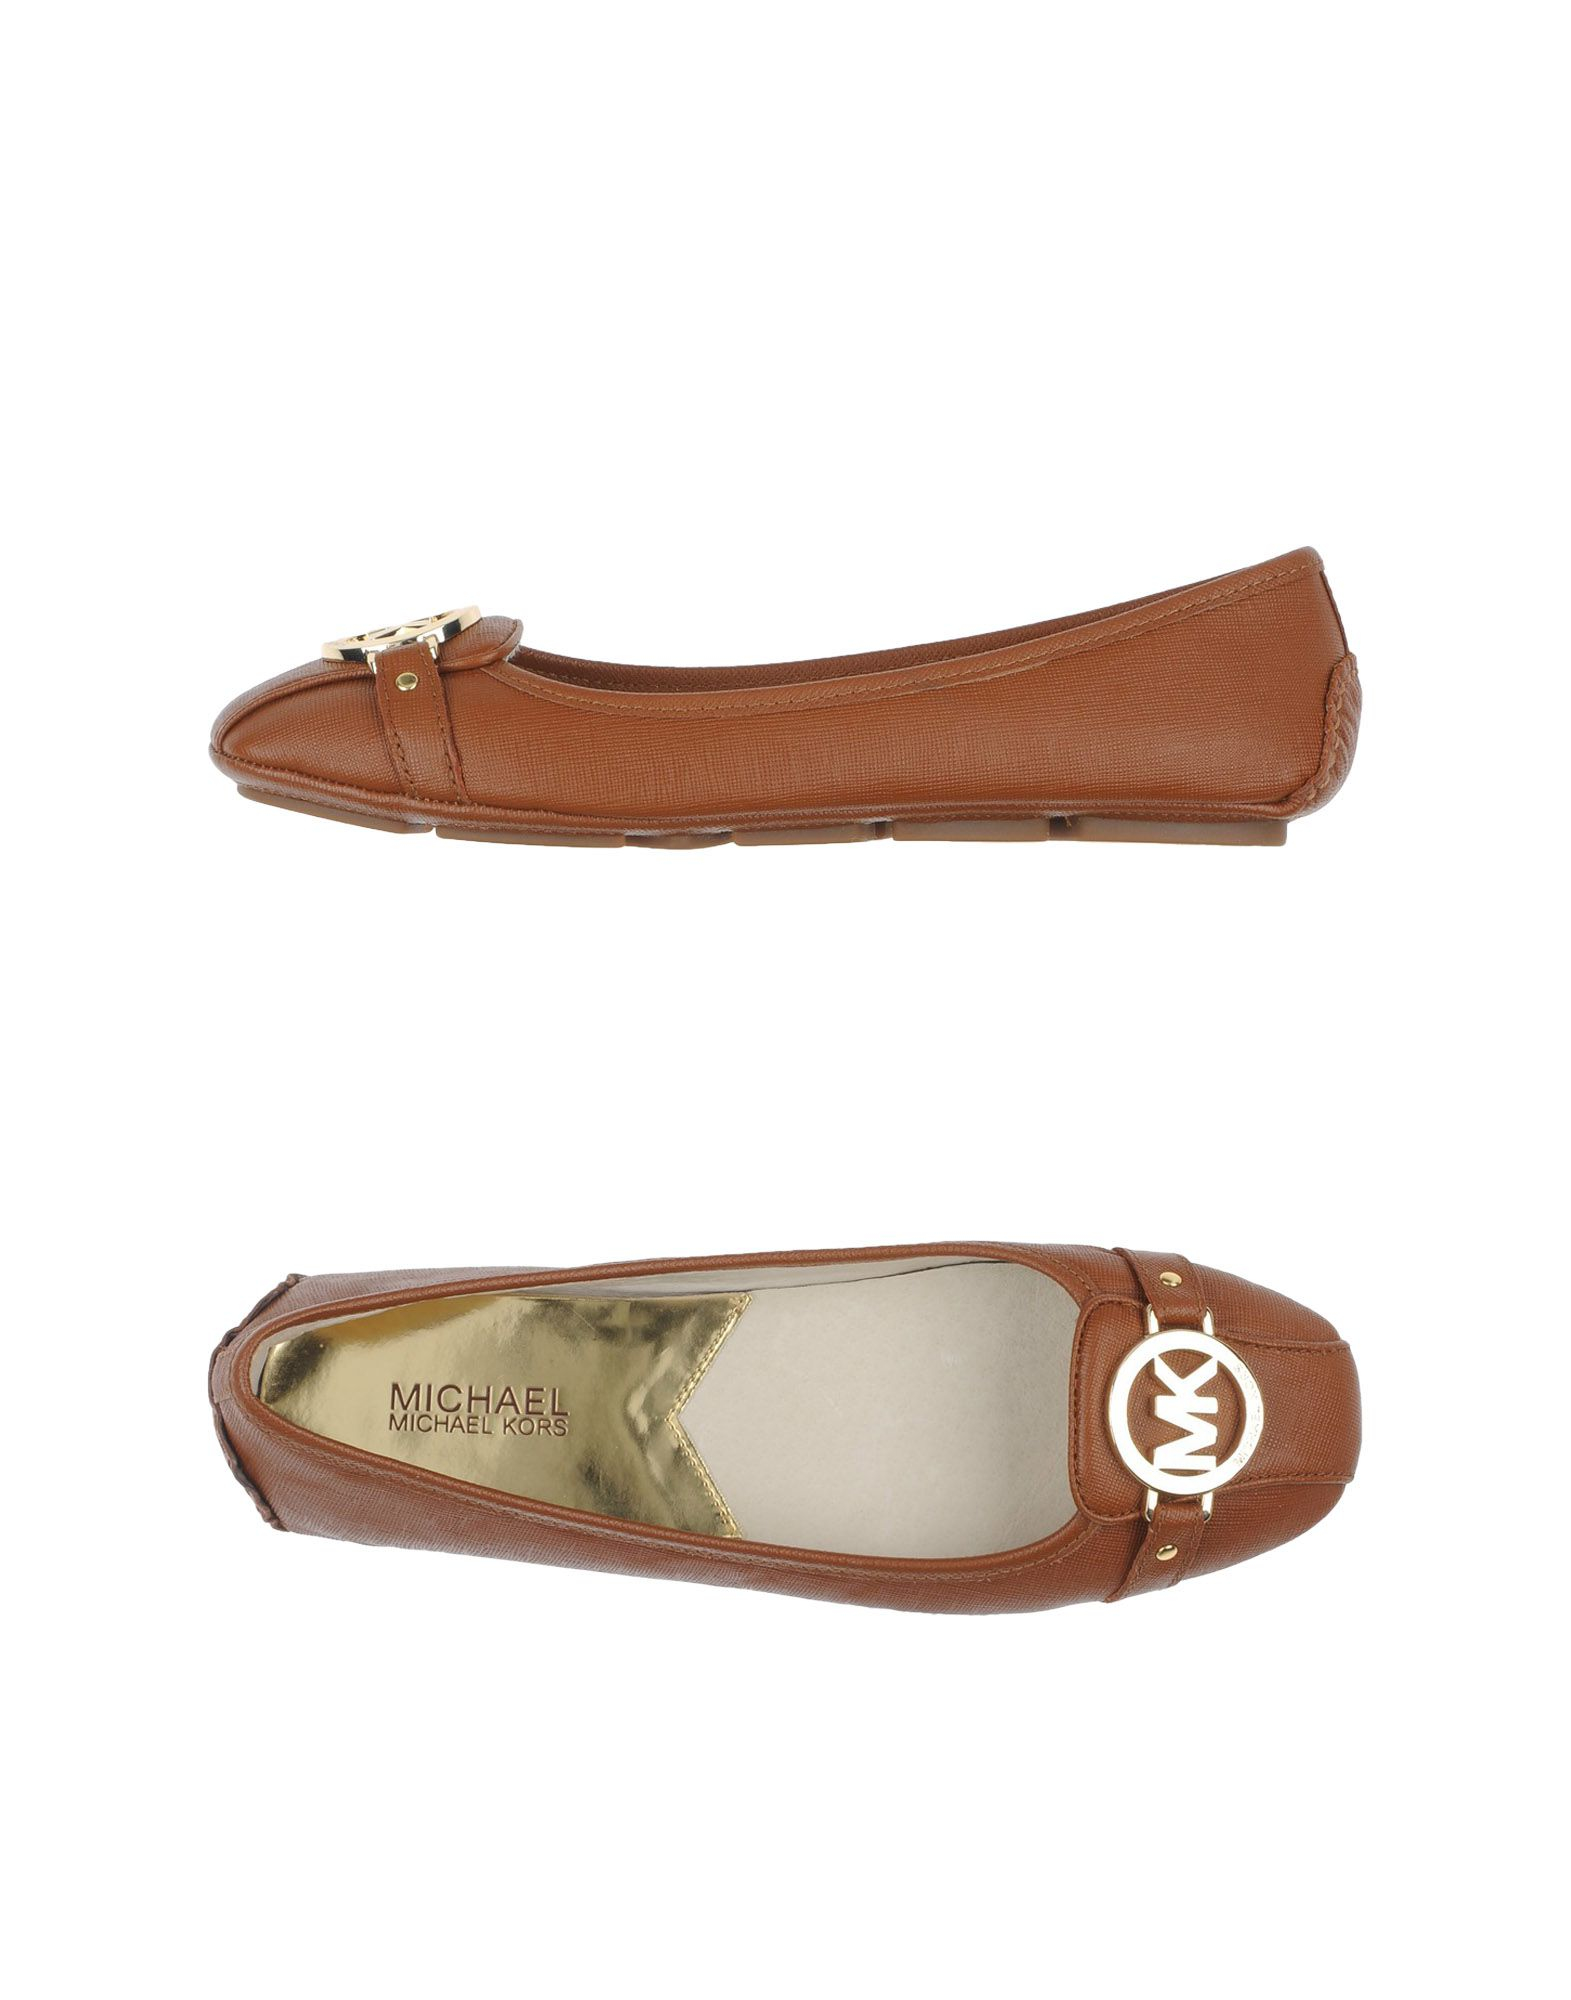 Brown Leather Ballet Flat Shoes